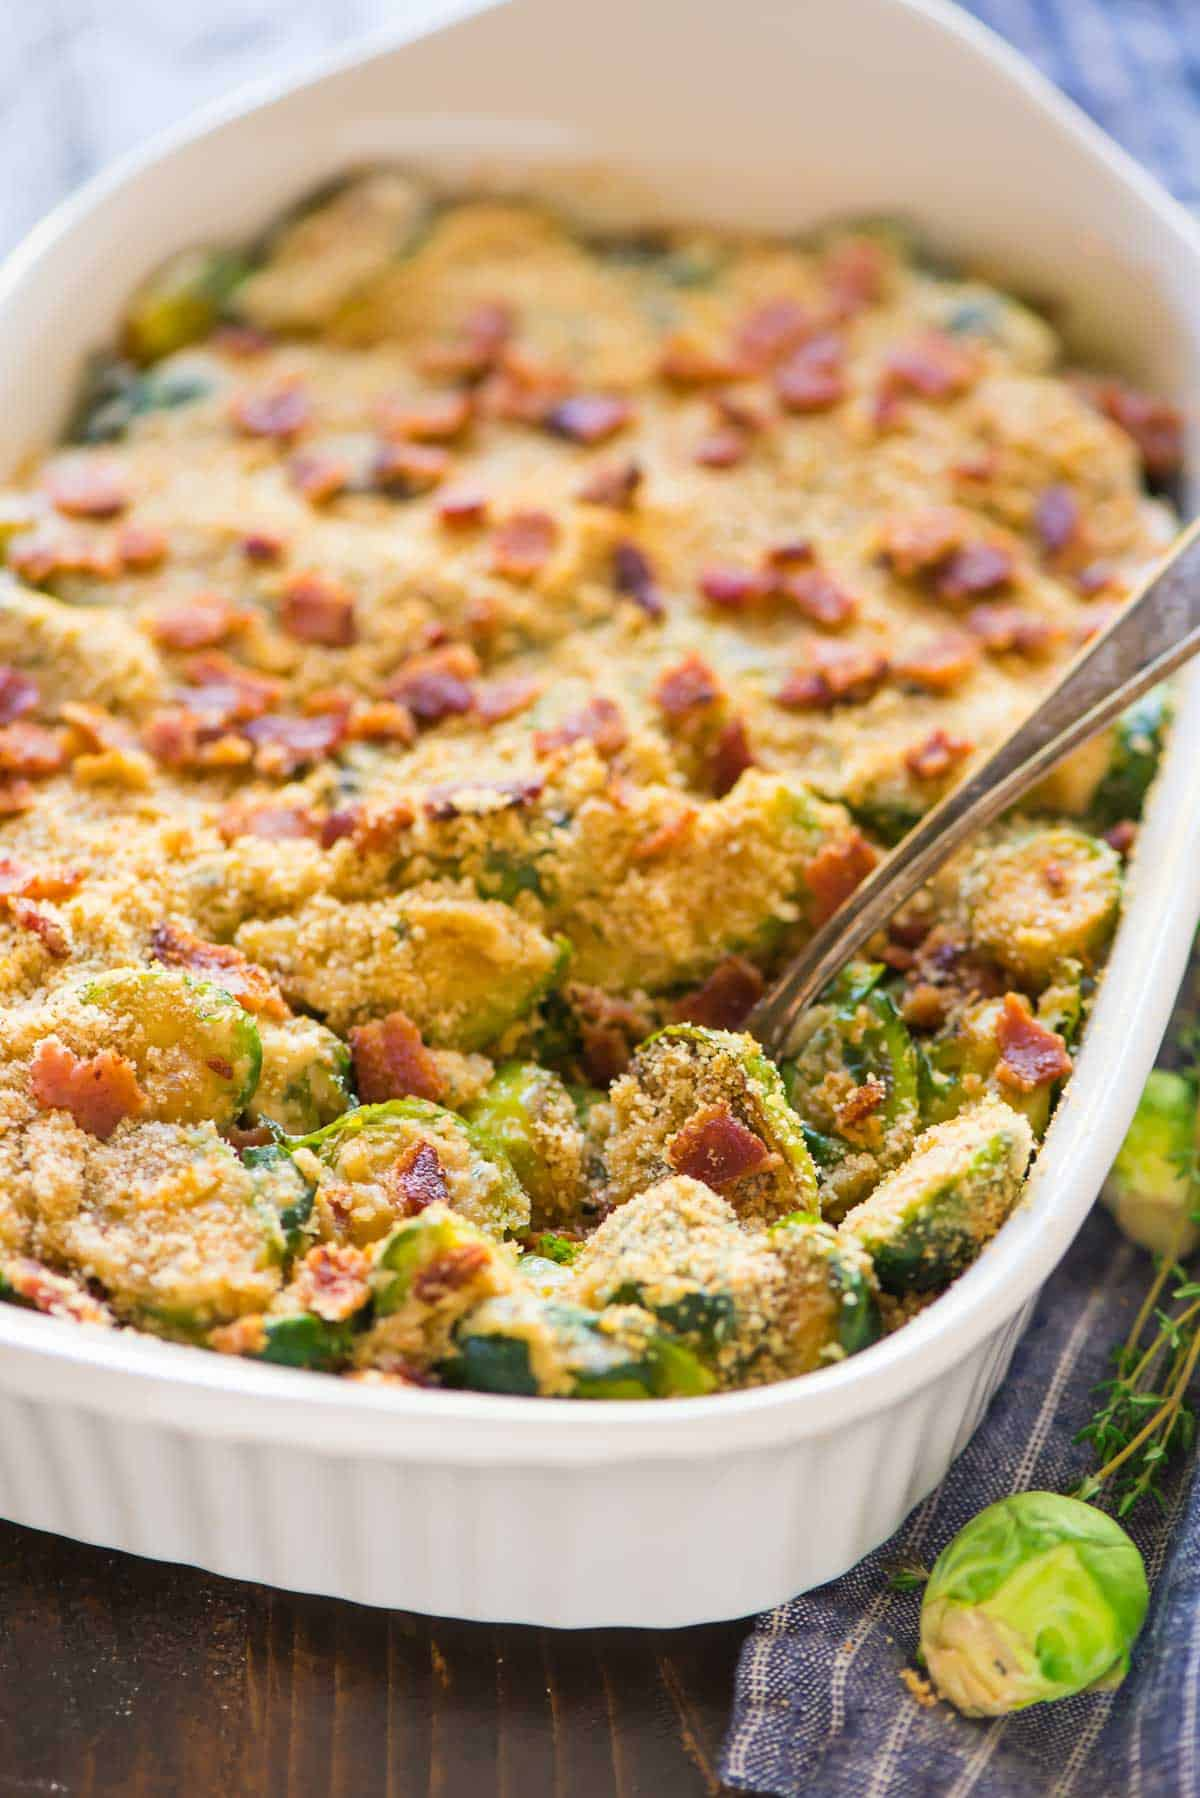 Bacon bits and breadcrumbs on top of a vegetable gratin